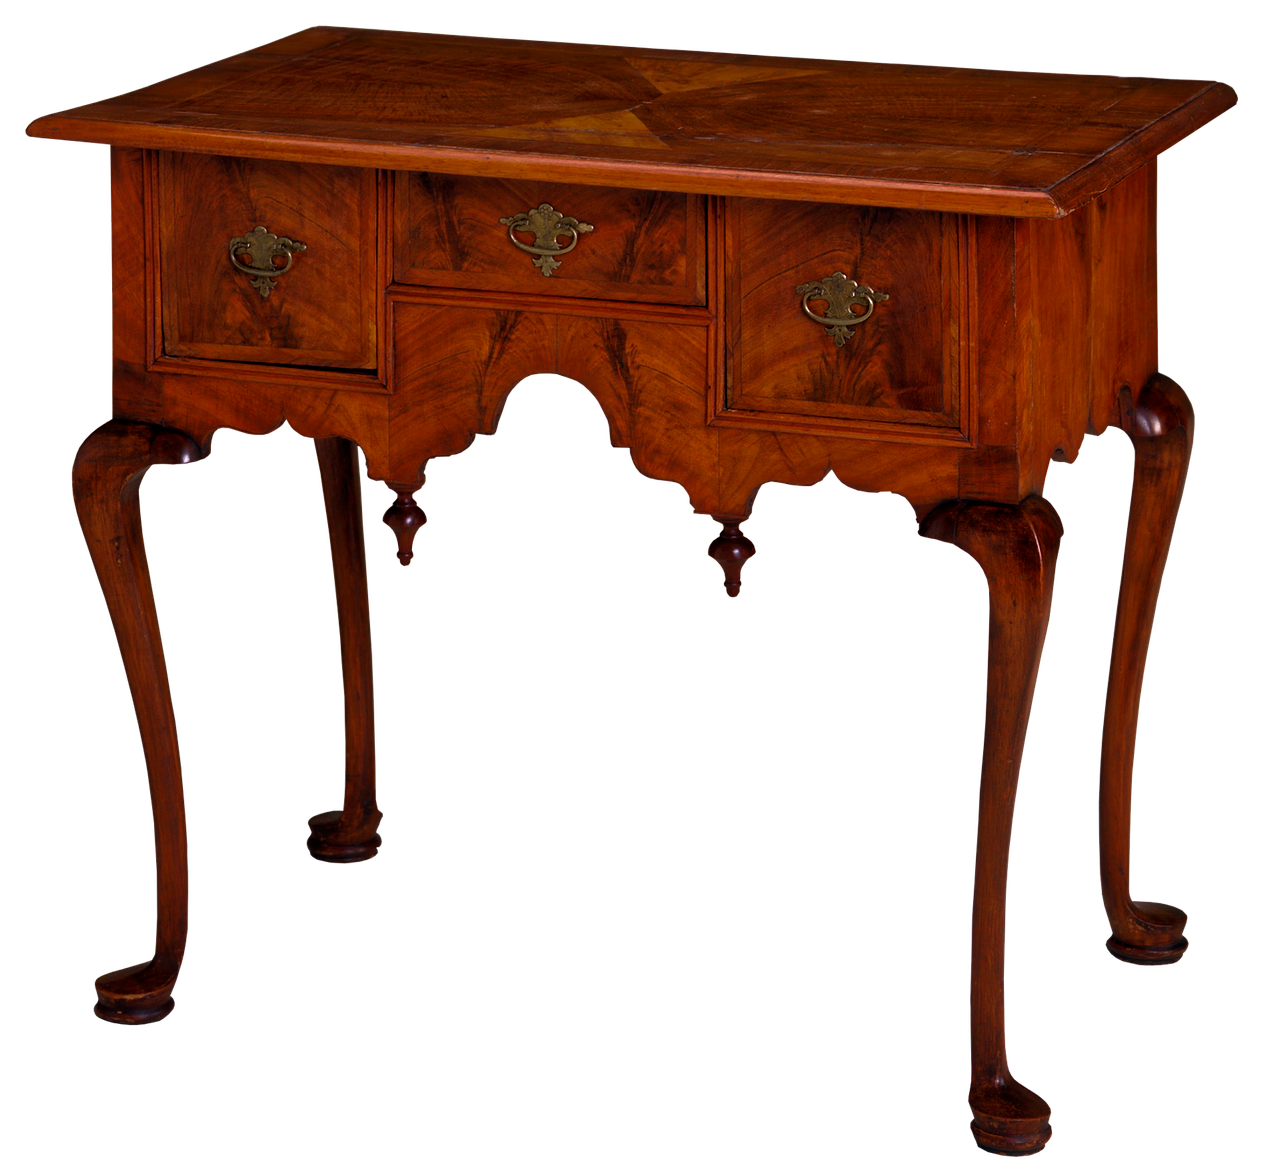 Restore wood furniture with wax diy instructions new england today Restoring old wooden furniture